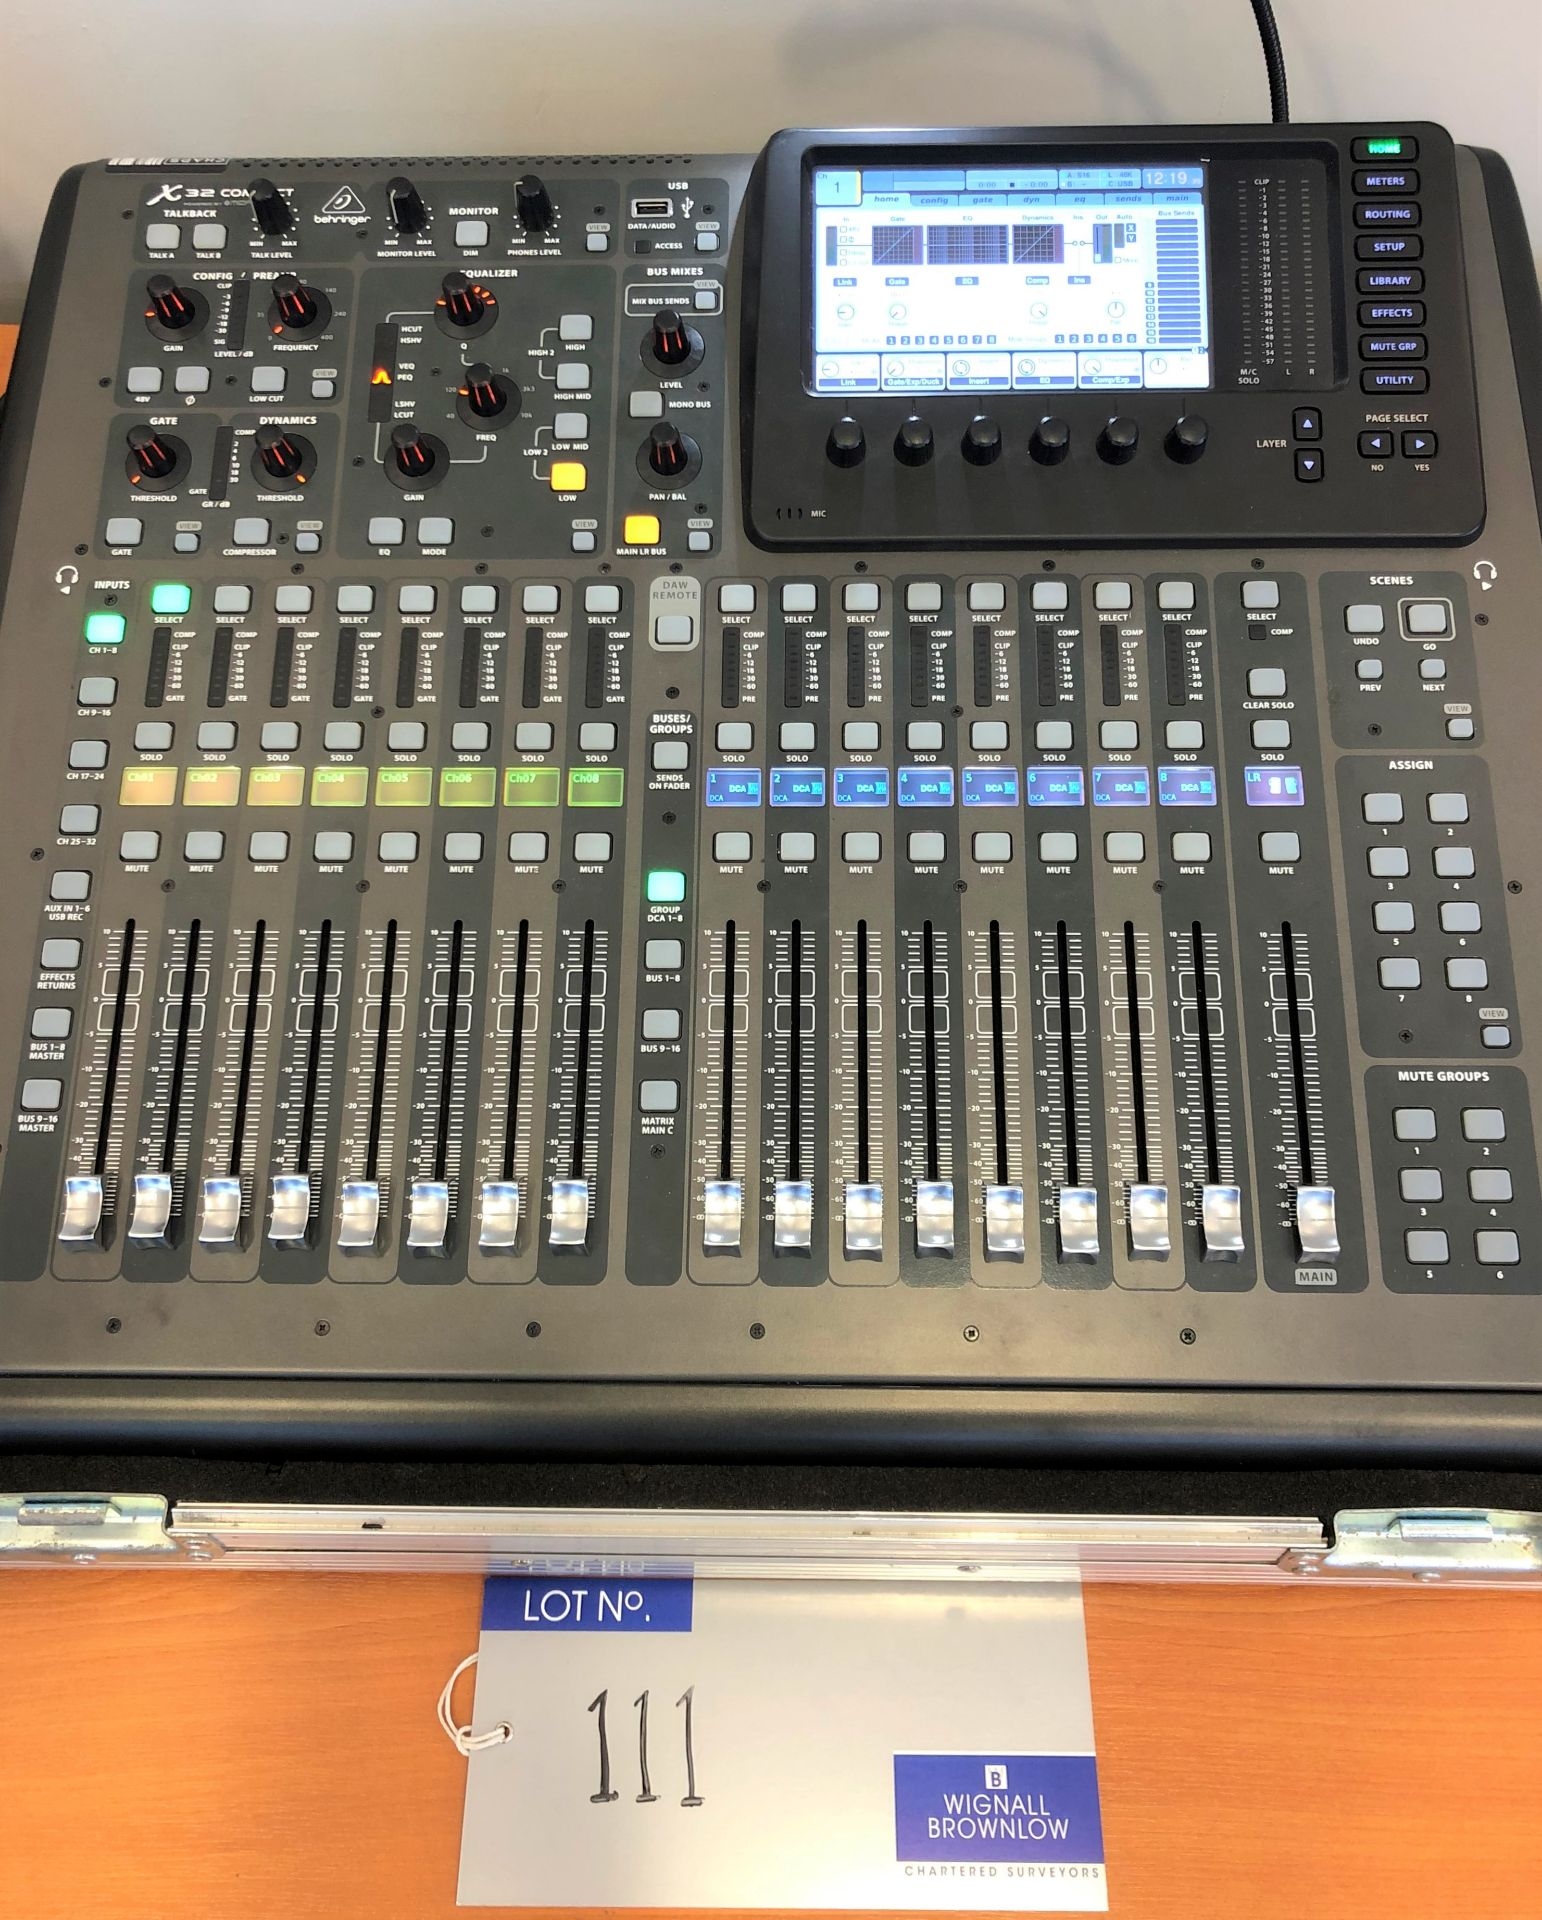 A Behringer Midas X32 Compact Digital Mixing Console with Behringer Midas S16 I/O Stage Box, 50m - Image 3 of 4